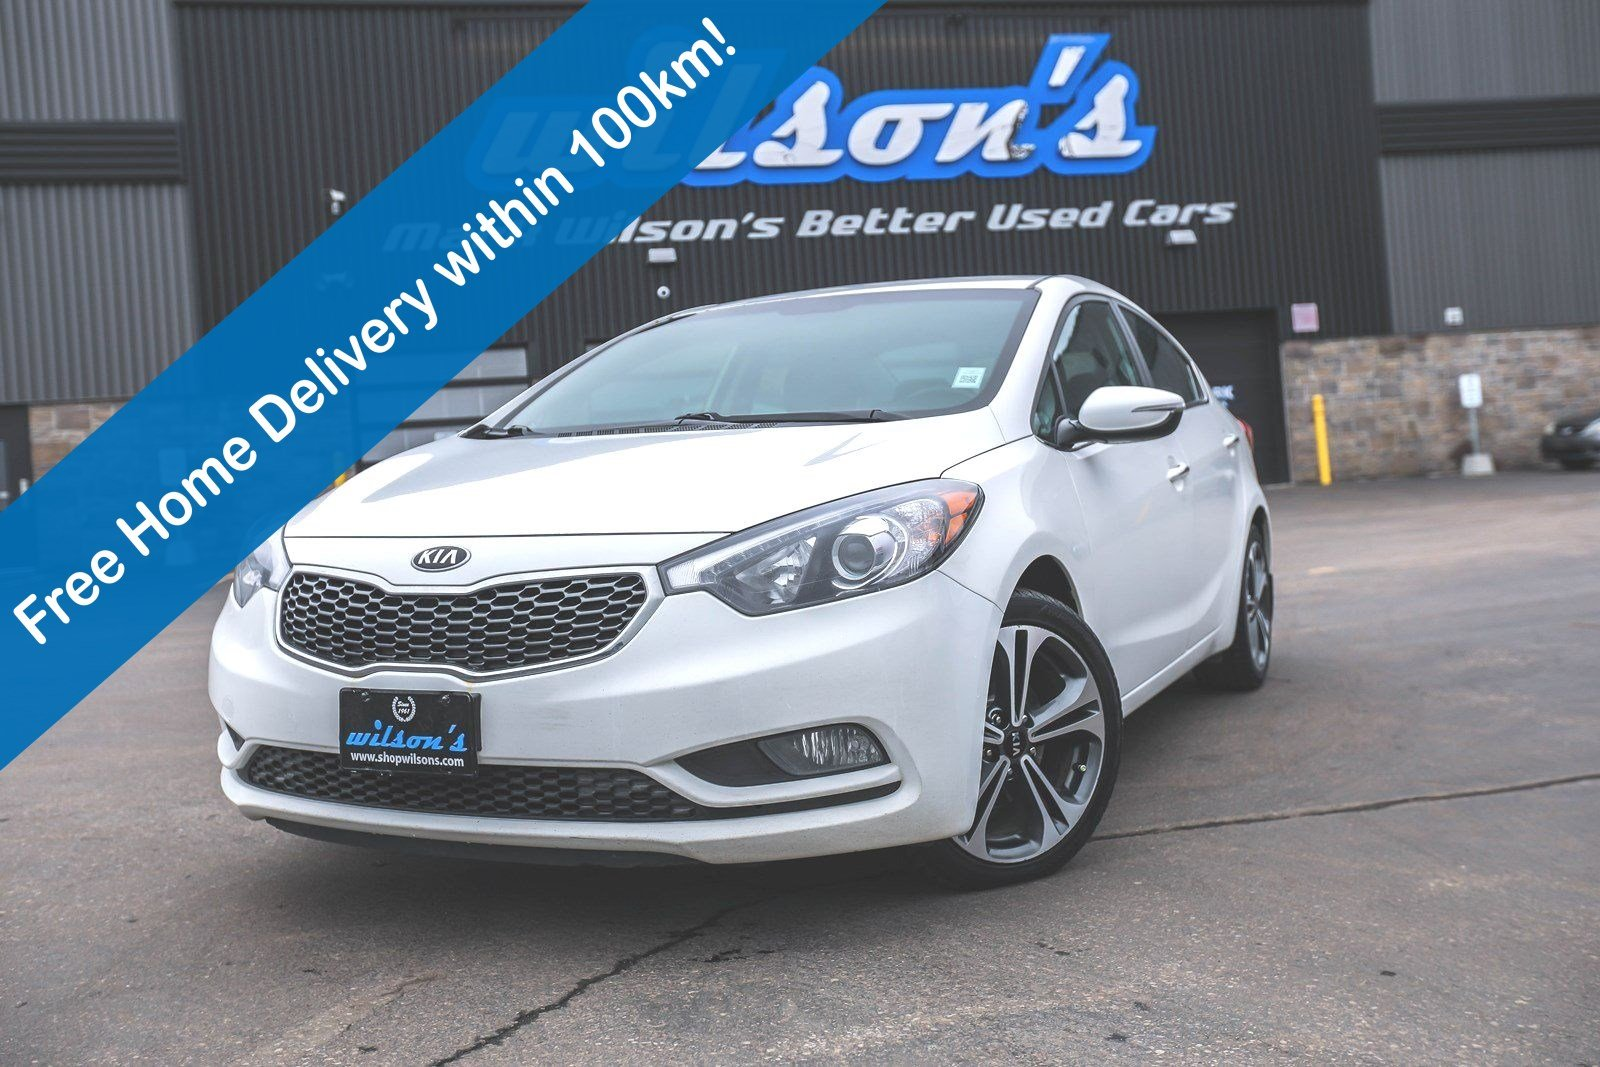 Certified Pre-Owned 2016 Kia Forte EX, Rear Camera, Heated Seats, Bluetooth, Keyless Entry, Cruise Control and more!